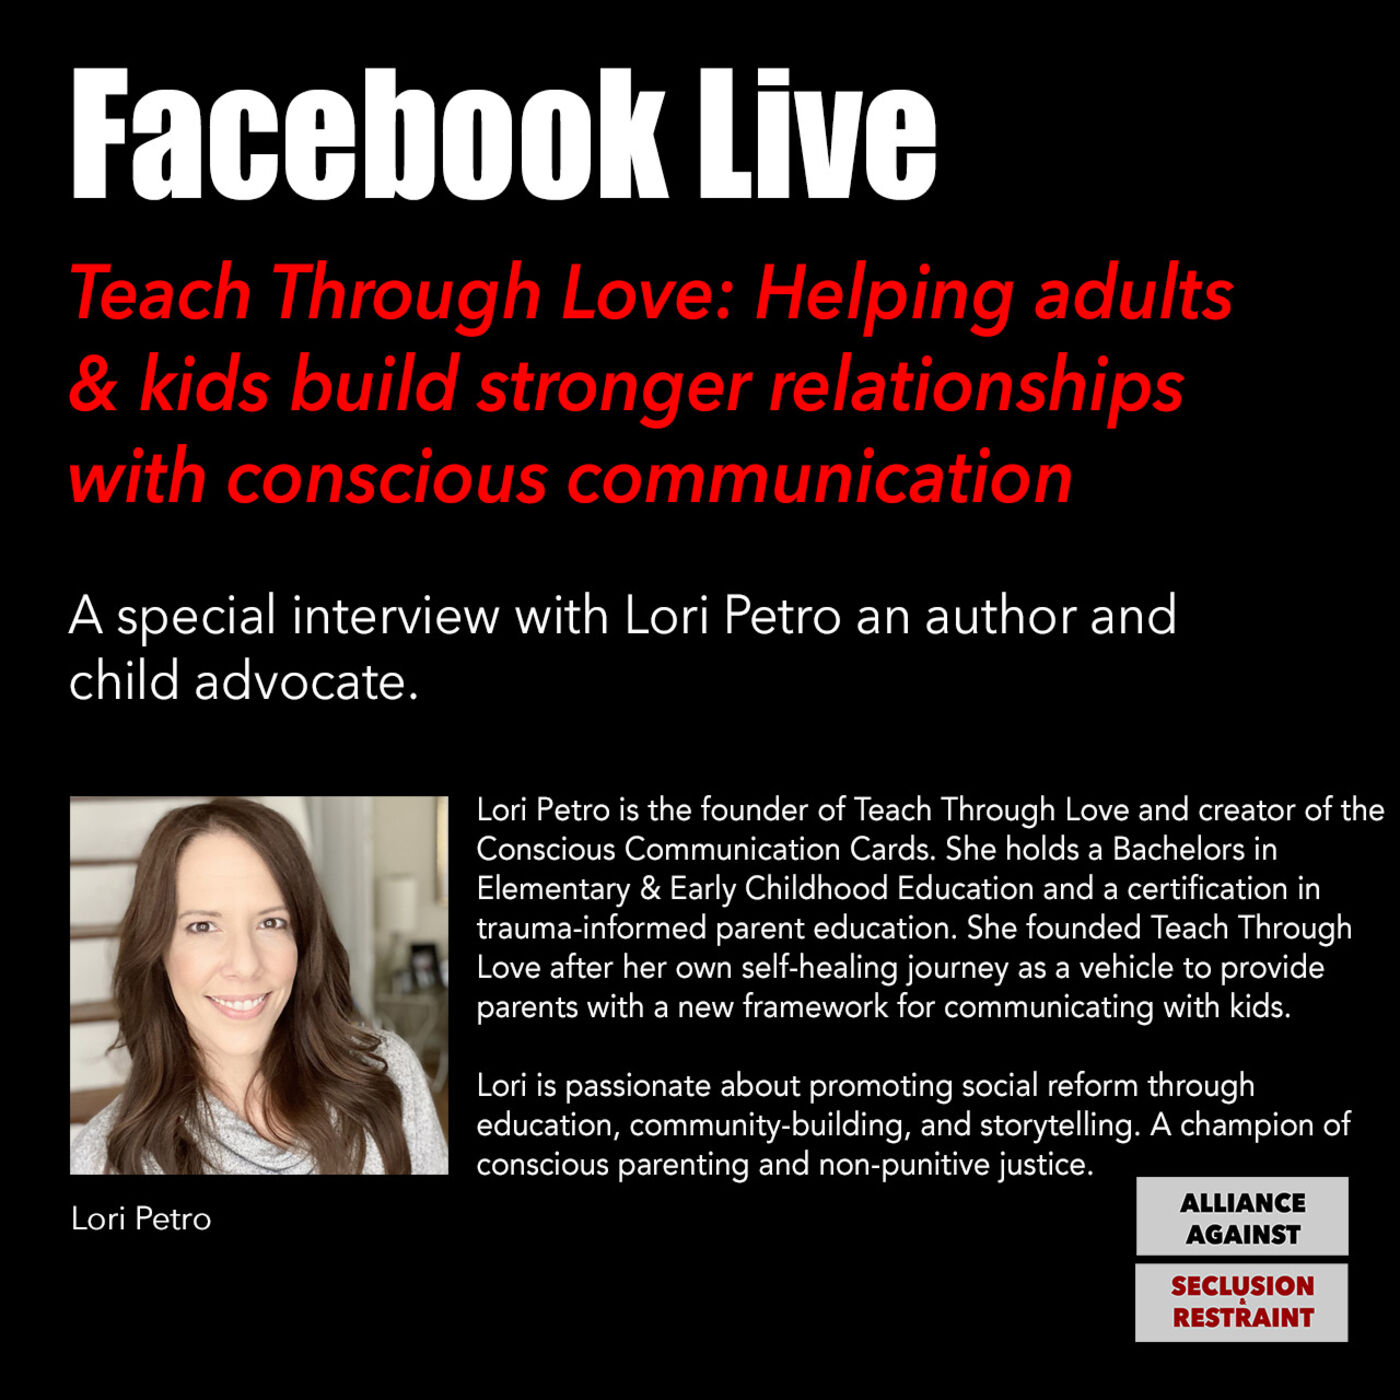 Teach Through Love: Helping adults & kids build stronger relationships with conscious communication